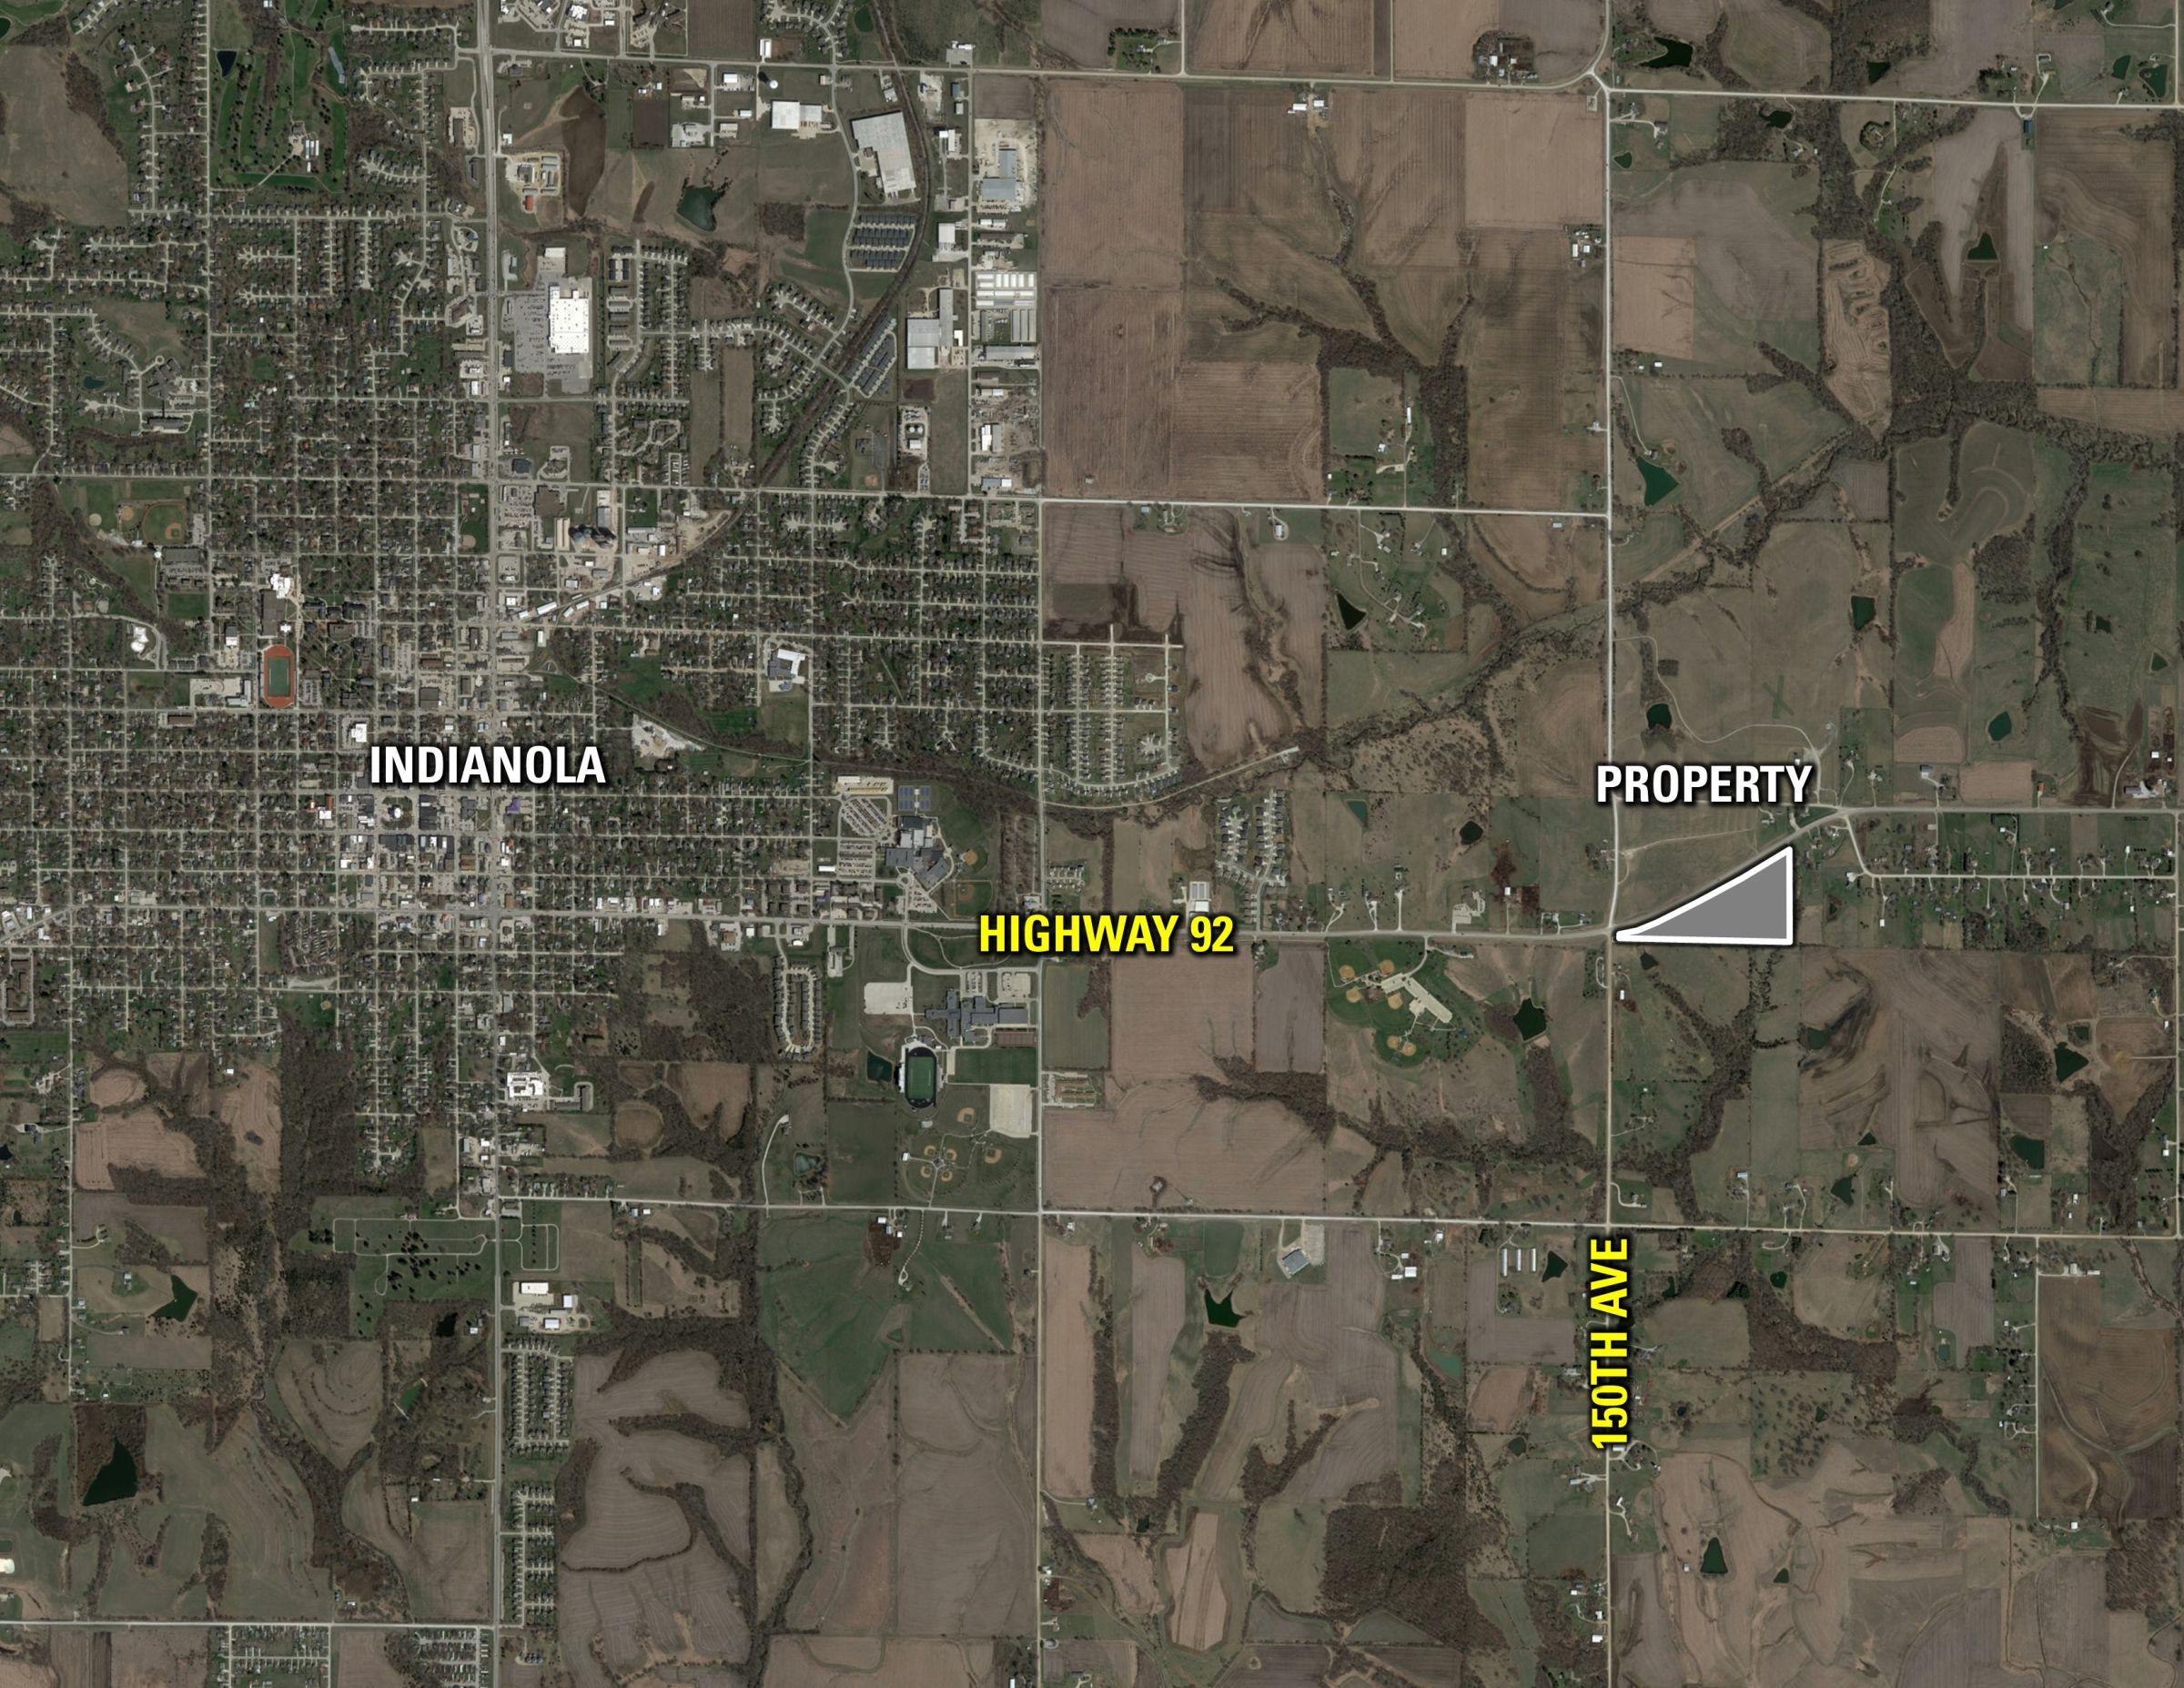 residential-land-commercial-warren-county-iowa-16-acres-listing-number-15510-1-2021-05-05-032223.jpg